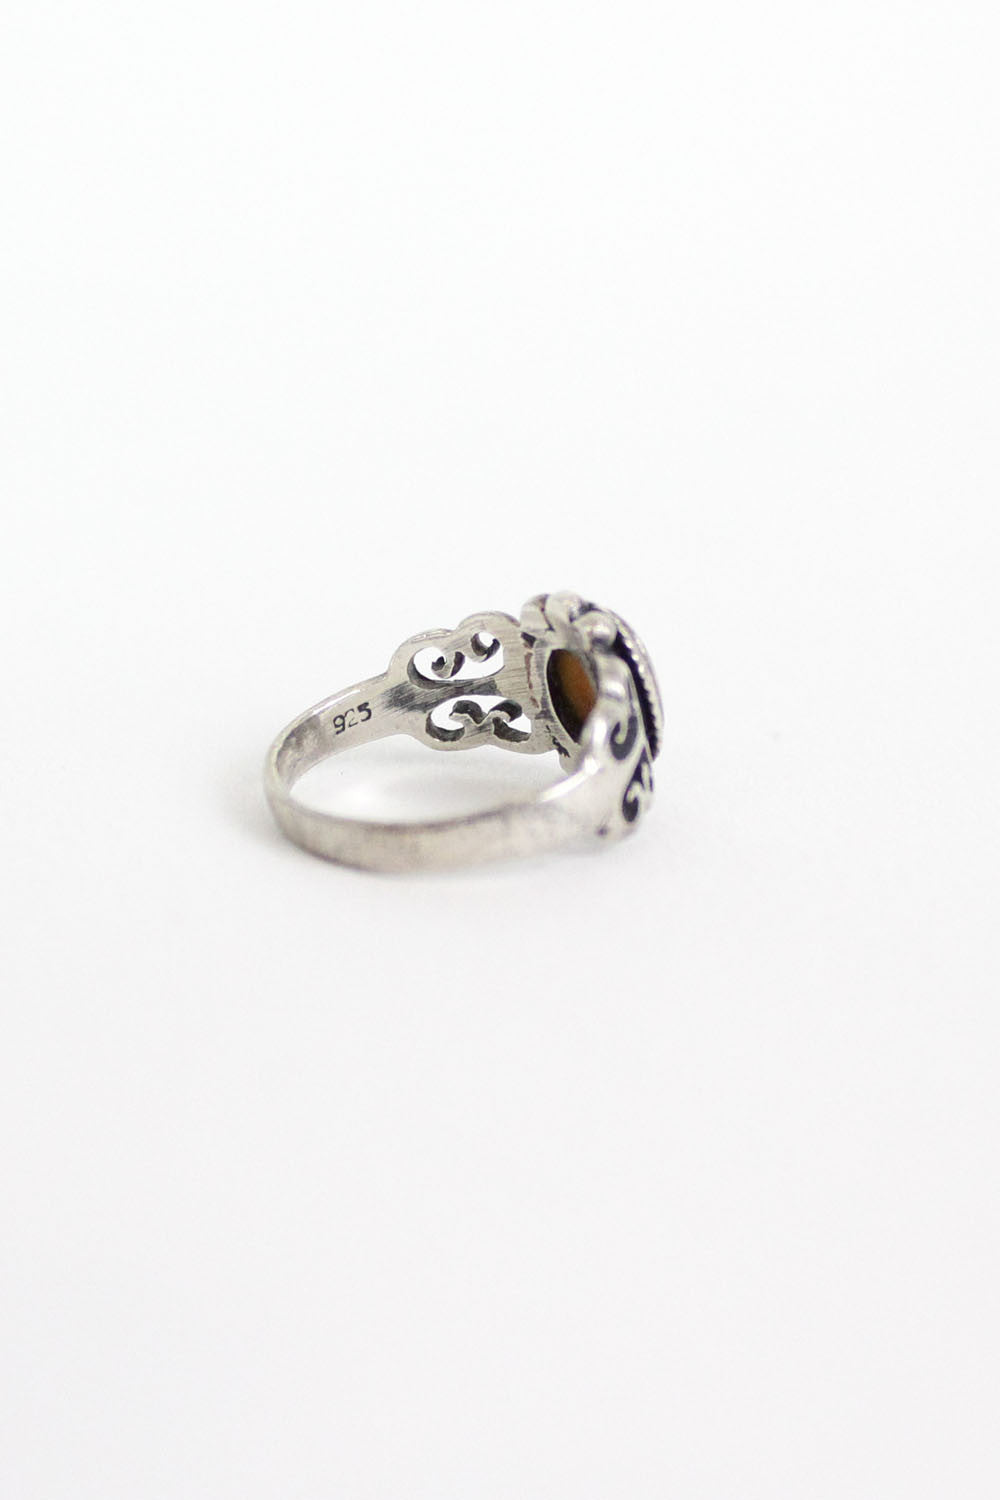 Scrolled Sterling Ring